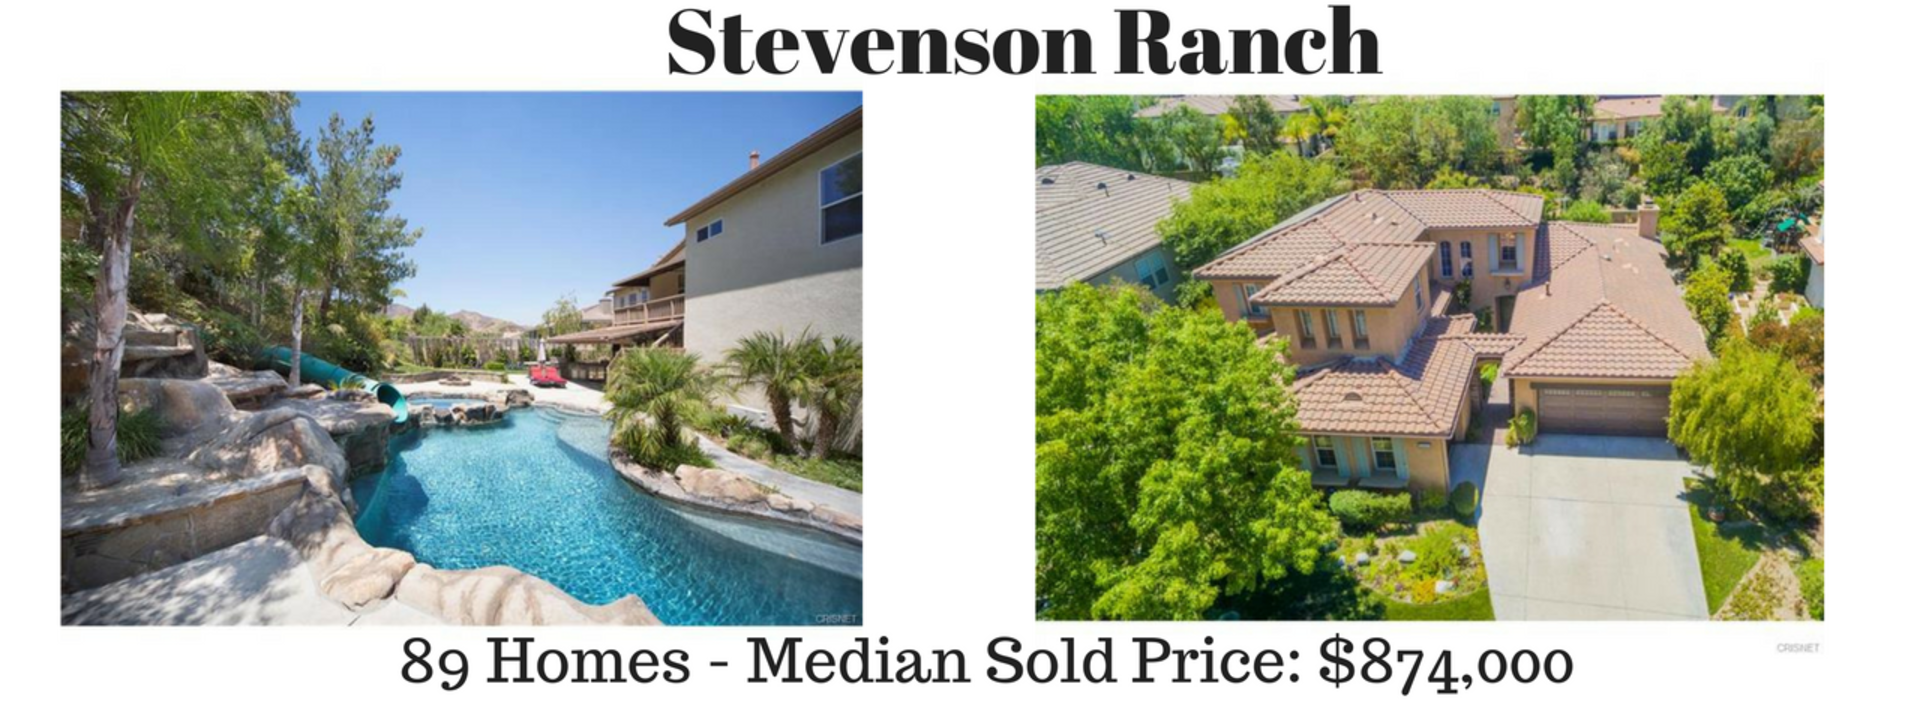 5 Things To Know About Stevenson Ranch Real Estate